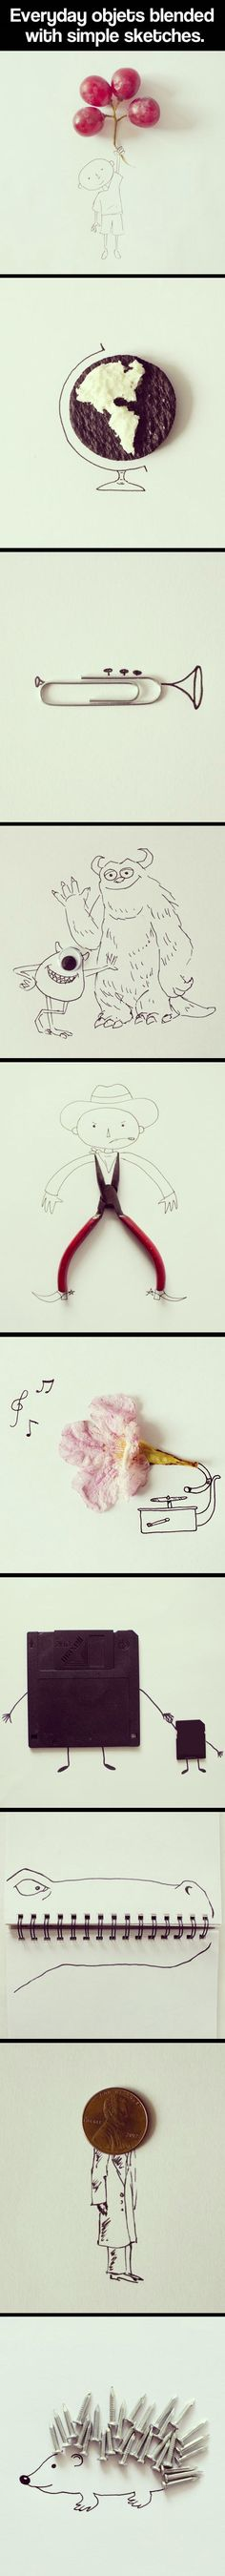 Playful Illustrations by Javier Pérez via slowrobot: Every day objects come to life!